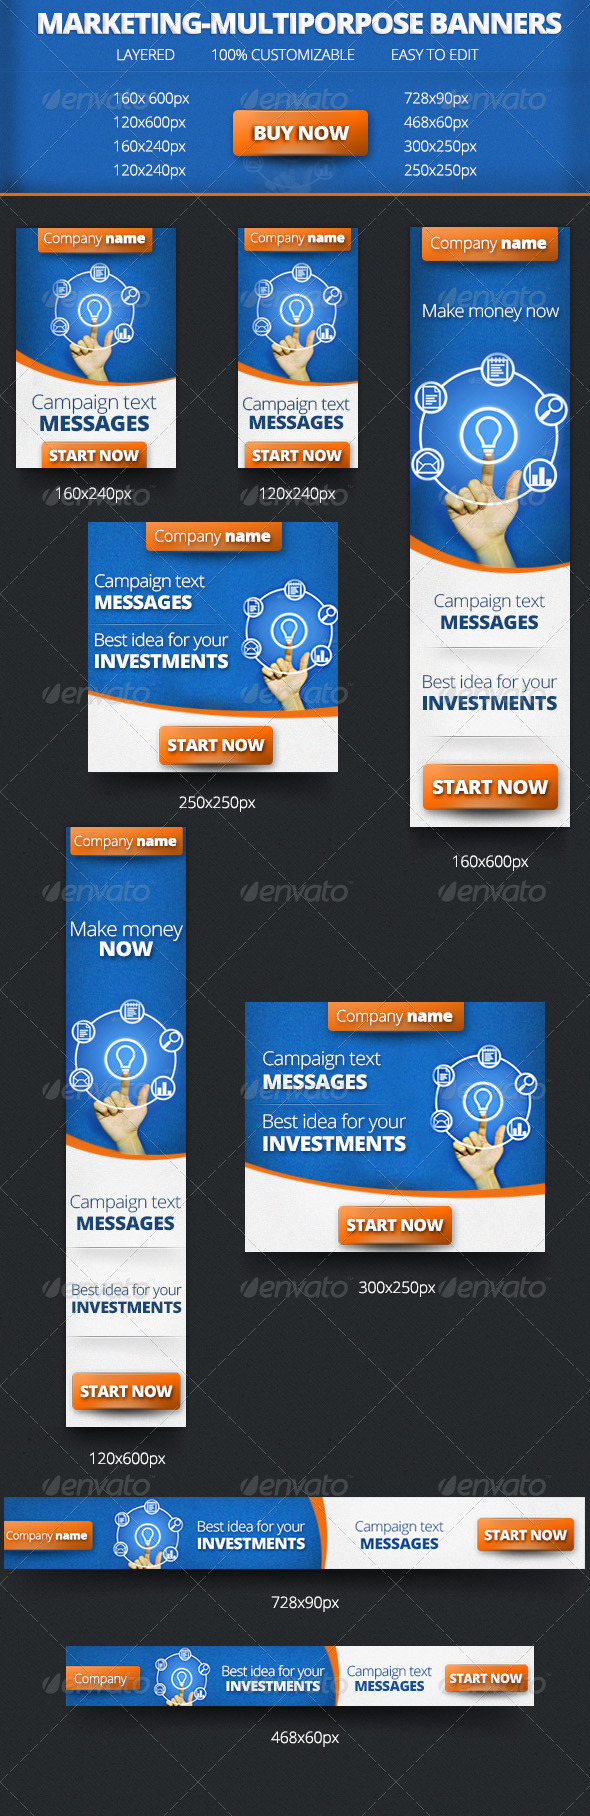 Marketing-Multiporpose Banners - Banners & Ads Web Elements